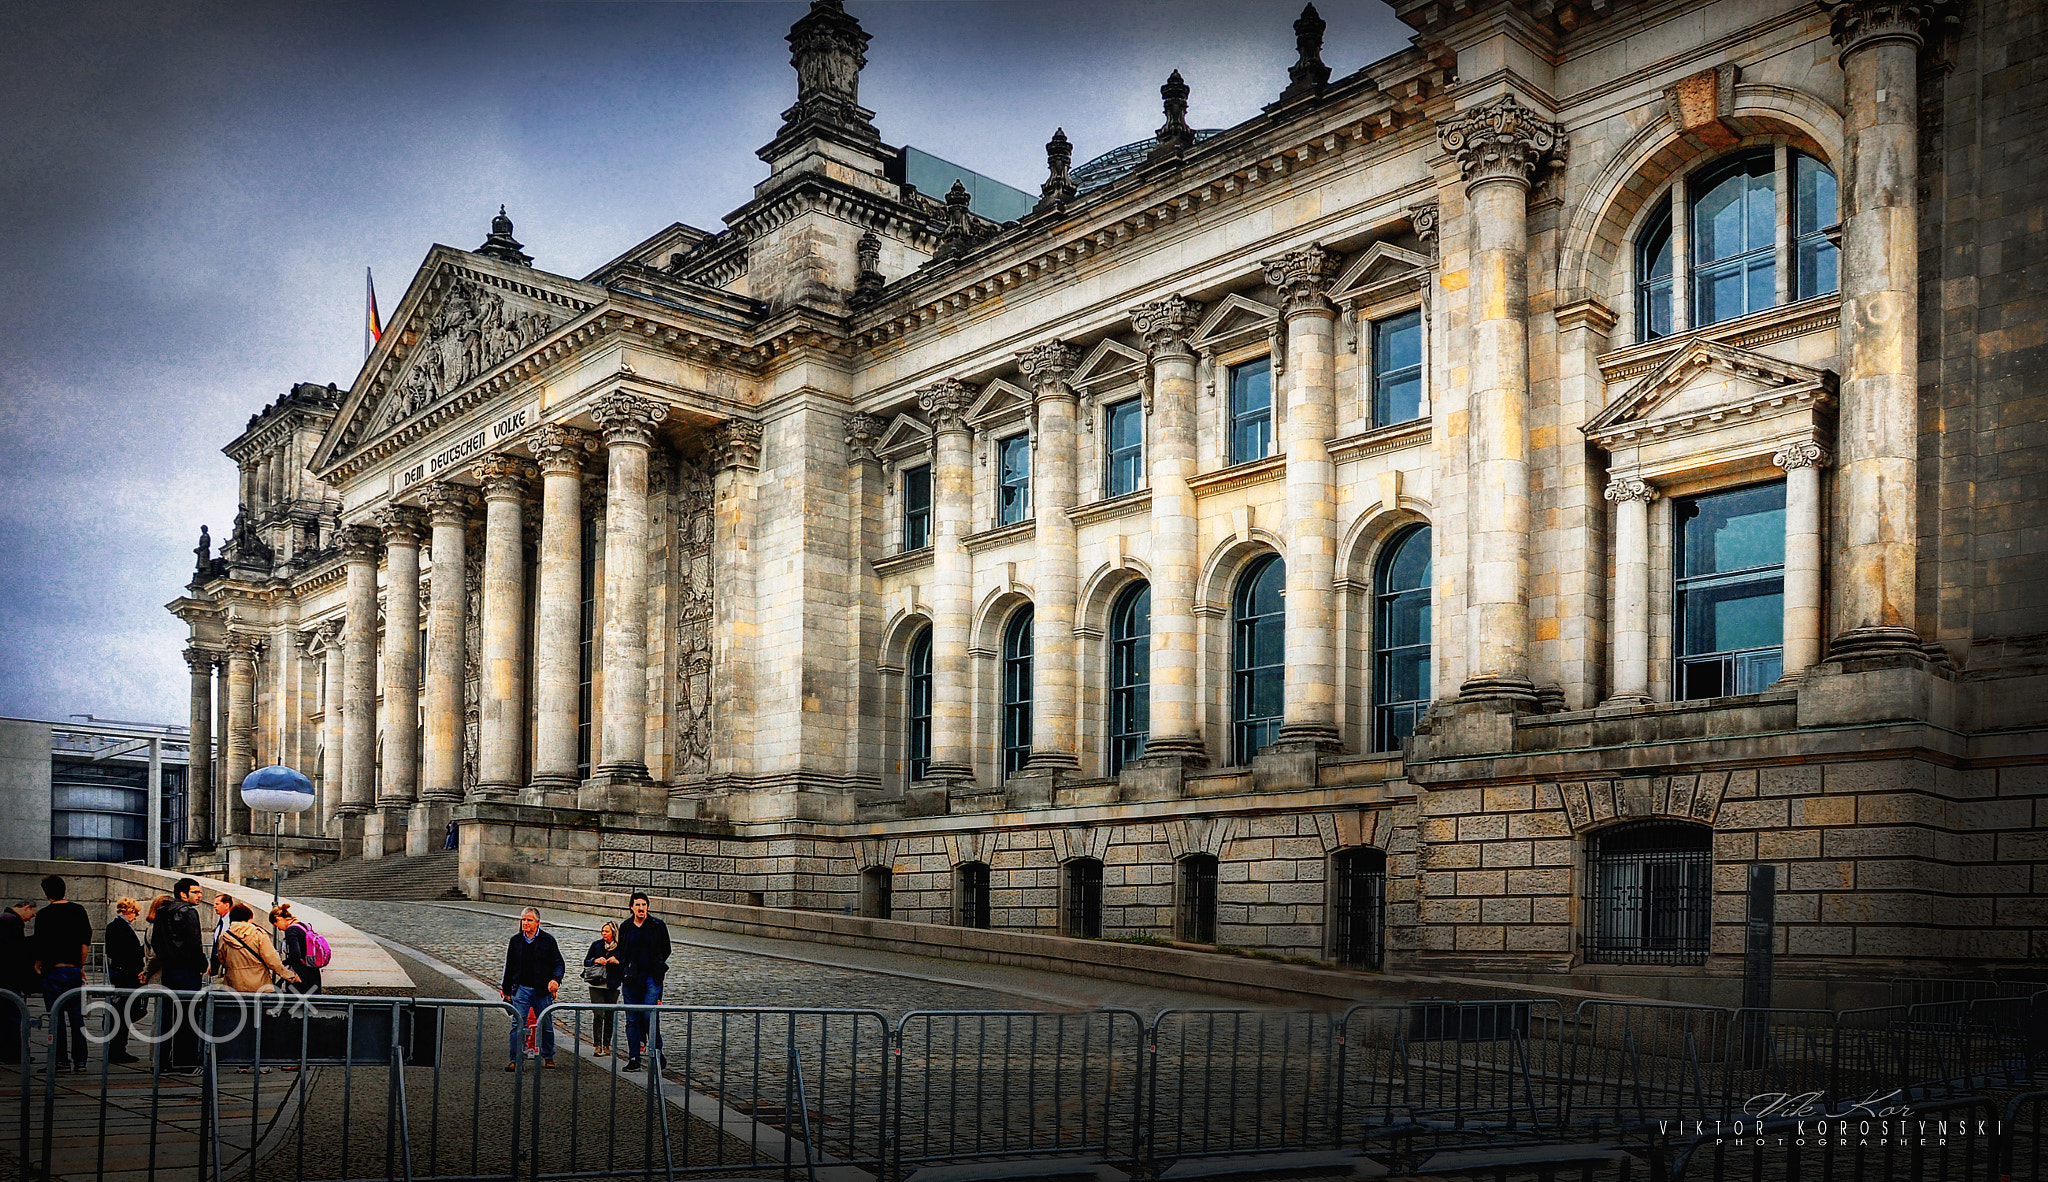 Photograph Reichstag.Berlin by Viktor Korostynski on 500px